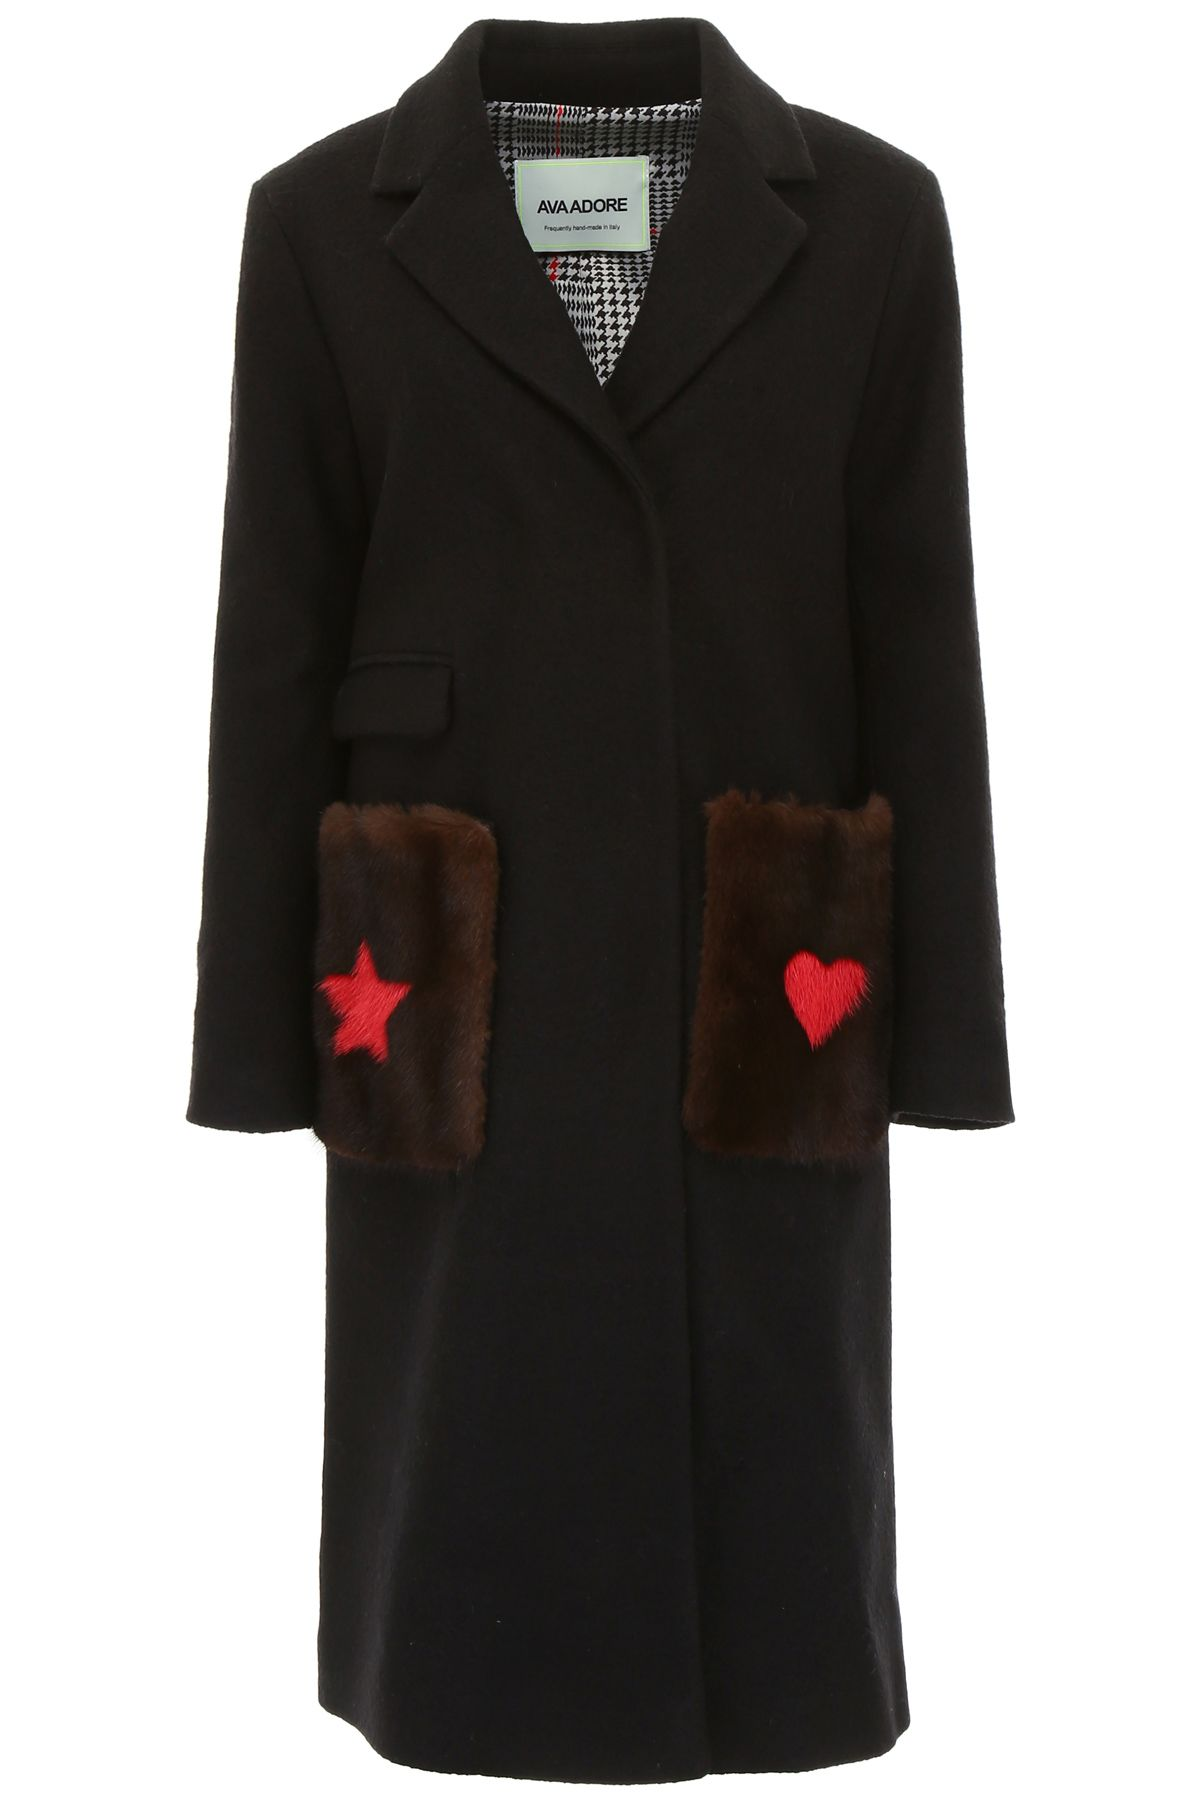 AVA ADORE COAT WITH MINK FUR ON THE POCKETS